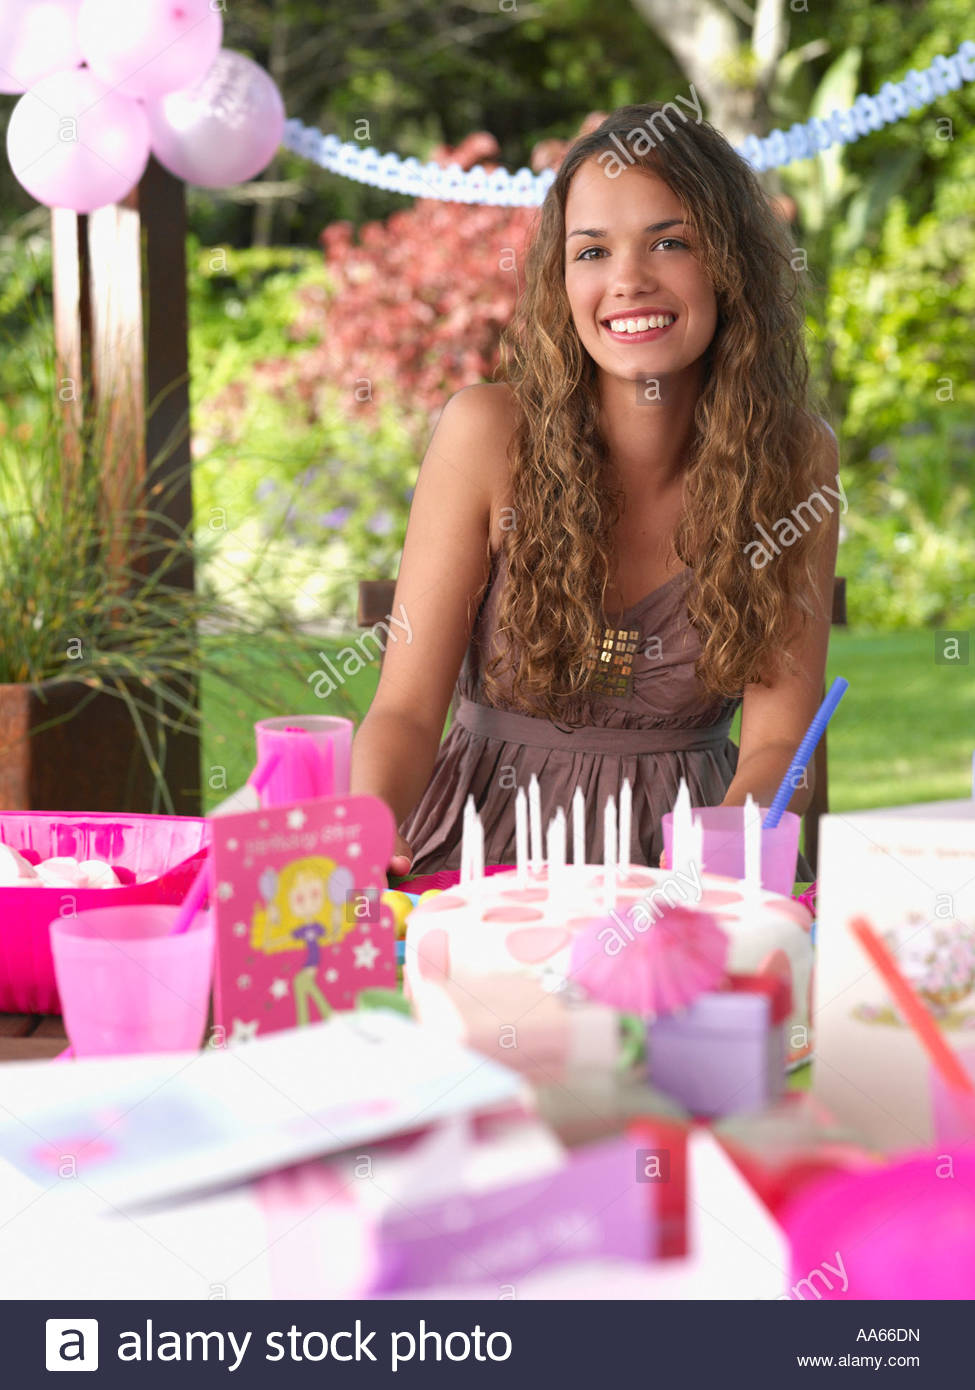 Teenage girl at birthday party smiling outdoors - Stock Image